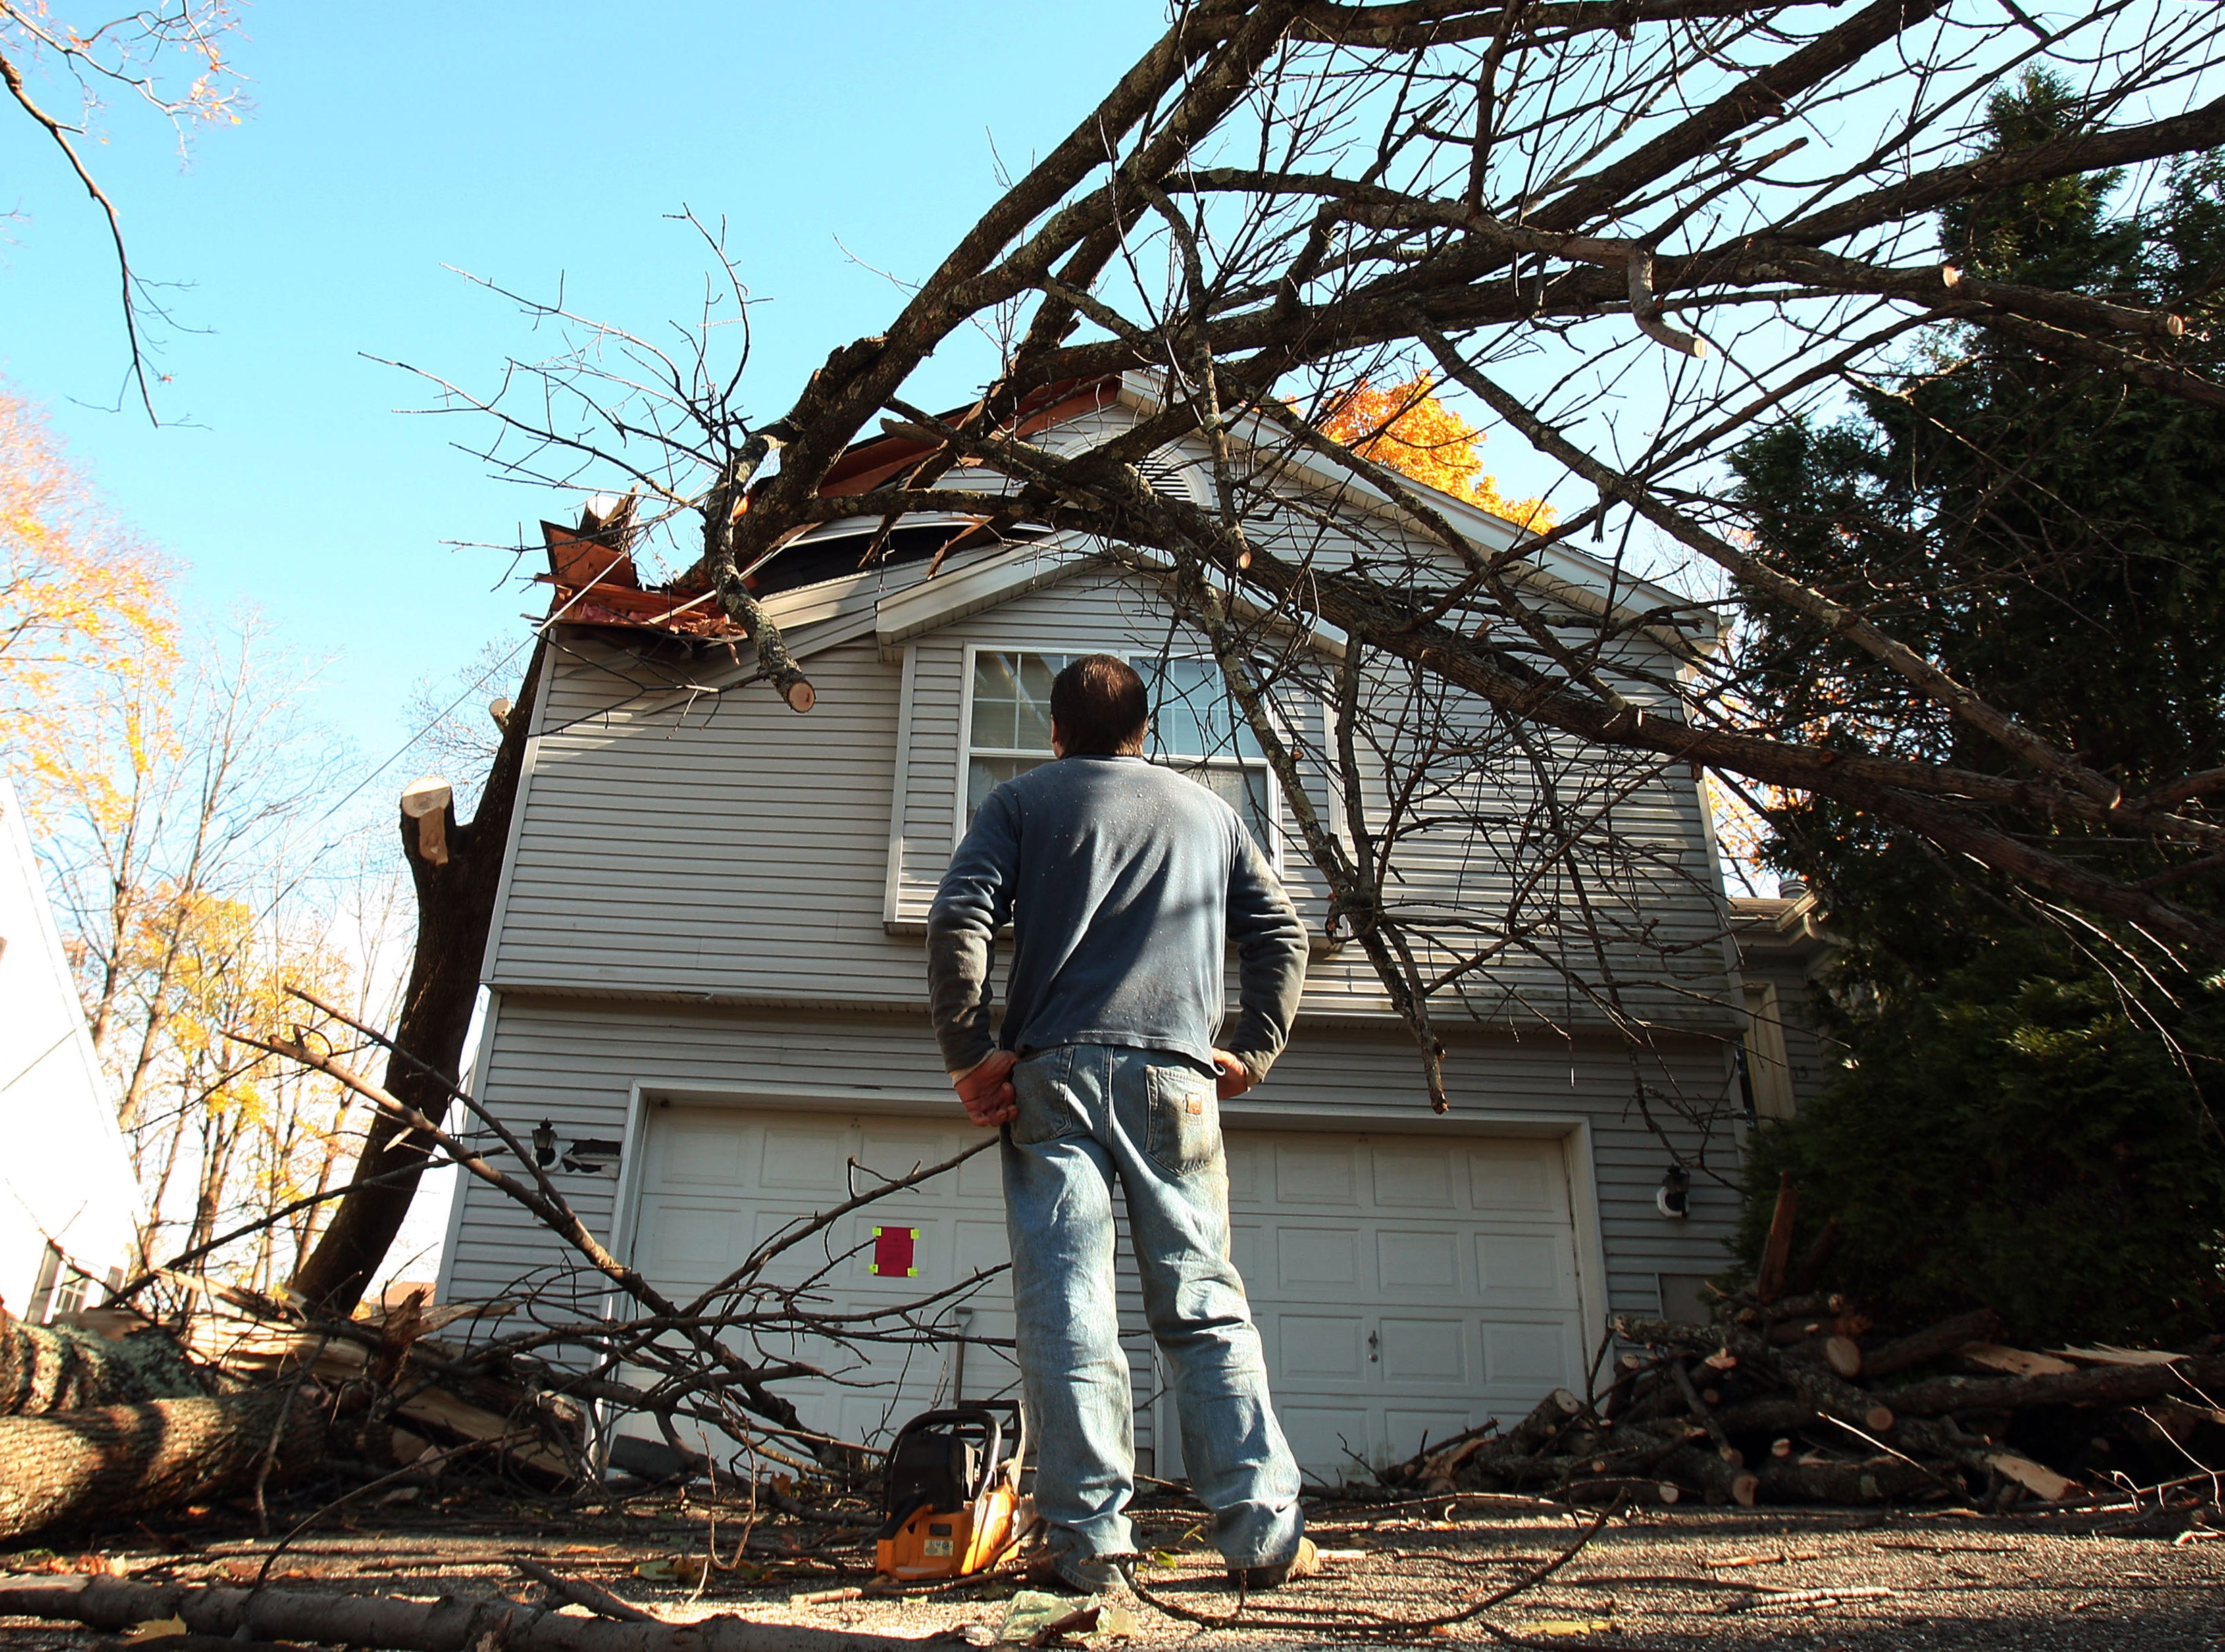 Morristown, N.J.- November 5, 2012-- Joe Esposito of HLM Designs in Randolph, NJ sizes up a large tree that destroyed part of a Morristown homeowners roof during Hurricane Sandy.Bob Karp/Staff Photographer/DAILY RECORD